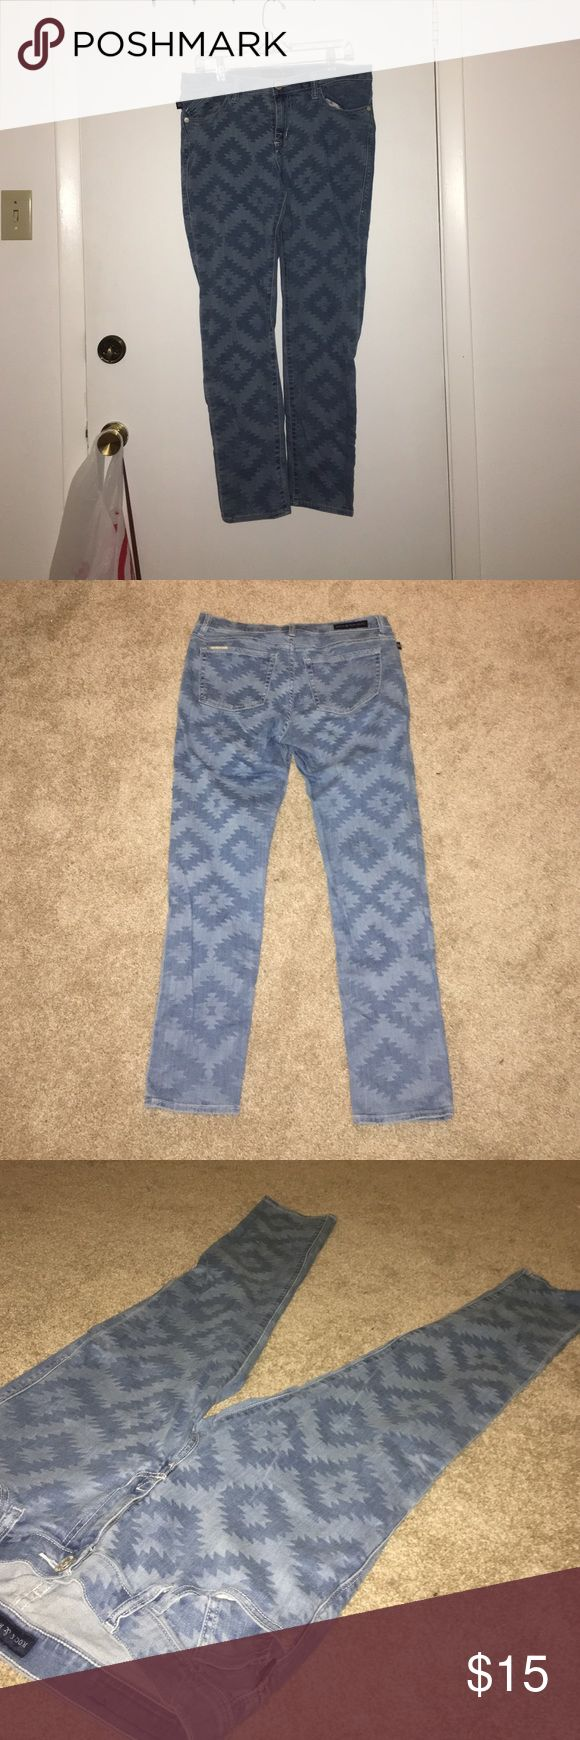 NEW Rock and Republic Light Blue Skinny Jeans Brand New! Never Before Worn! A pair of light blue skinny jeans with a geometric pattern. Fits great and looks great! Rock & Republic Jeans Skinny